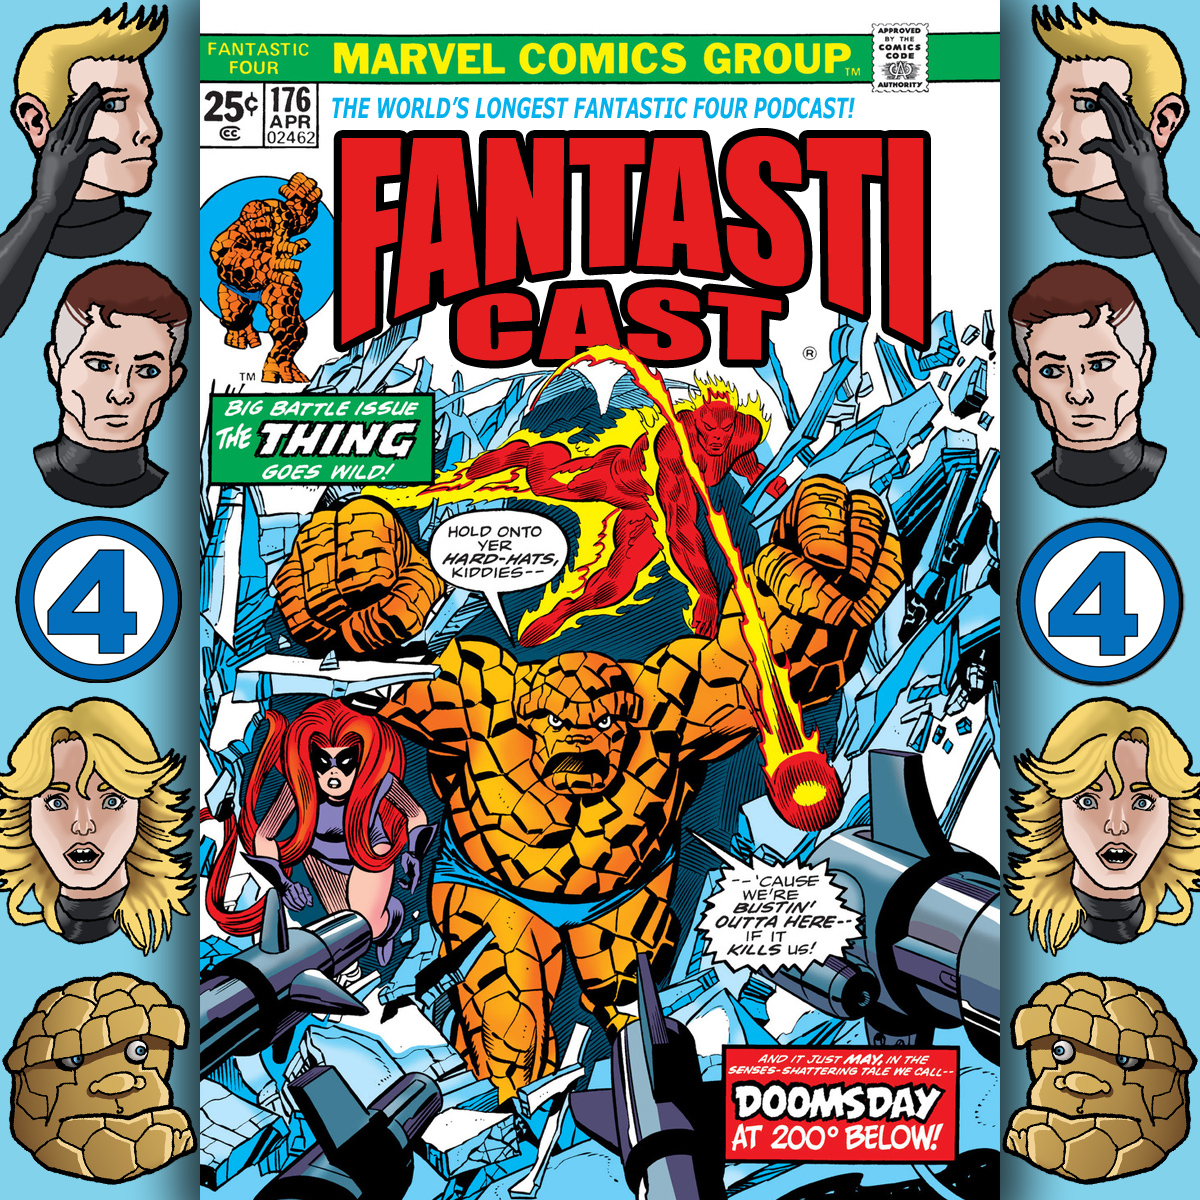 The Fantasticast Episode 176